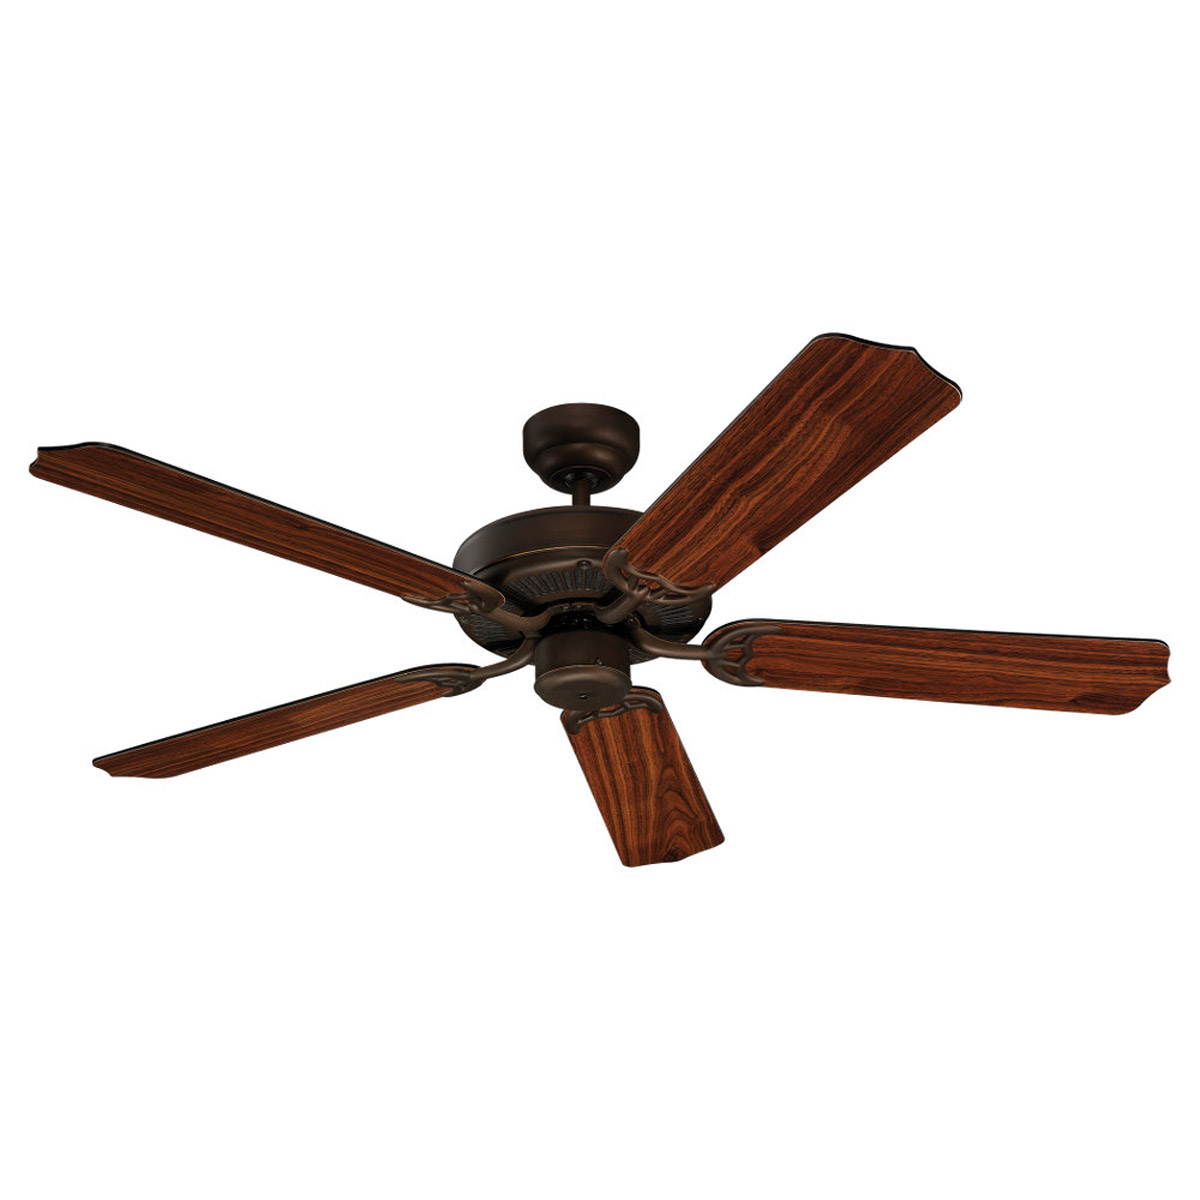 Sea Gull Lighting 52in Quality Max Ceiling Fan in Roman Bronze 15030-191